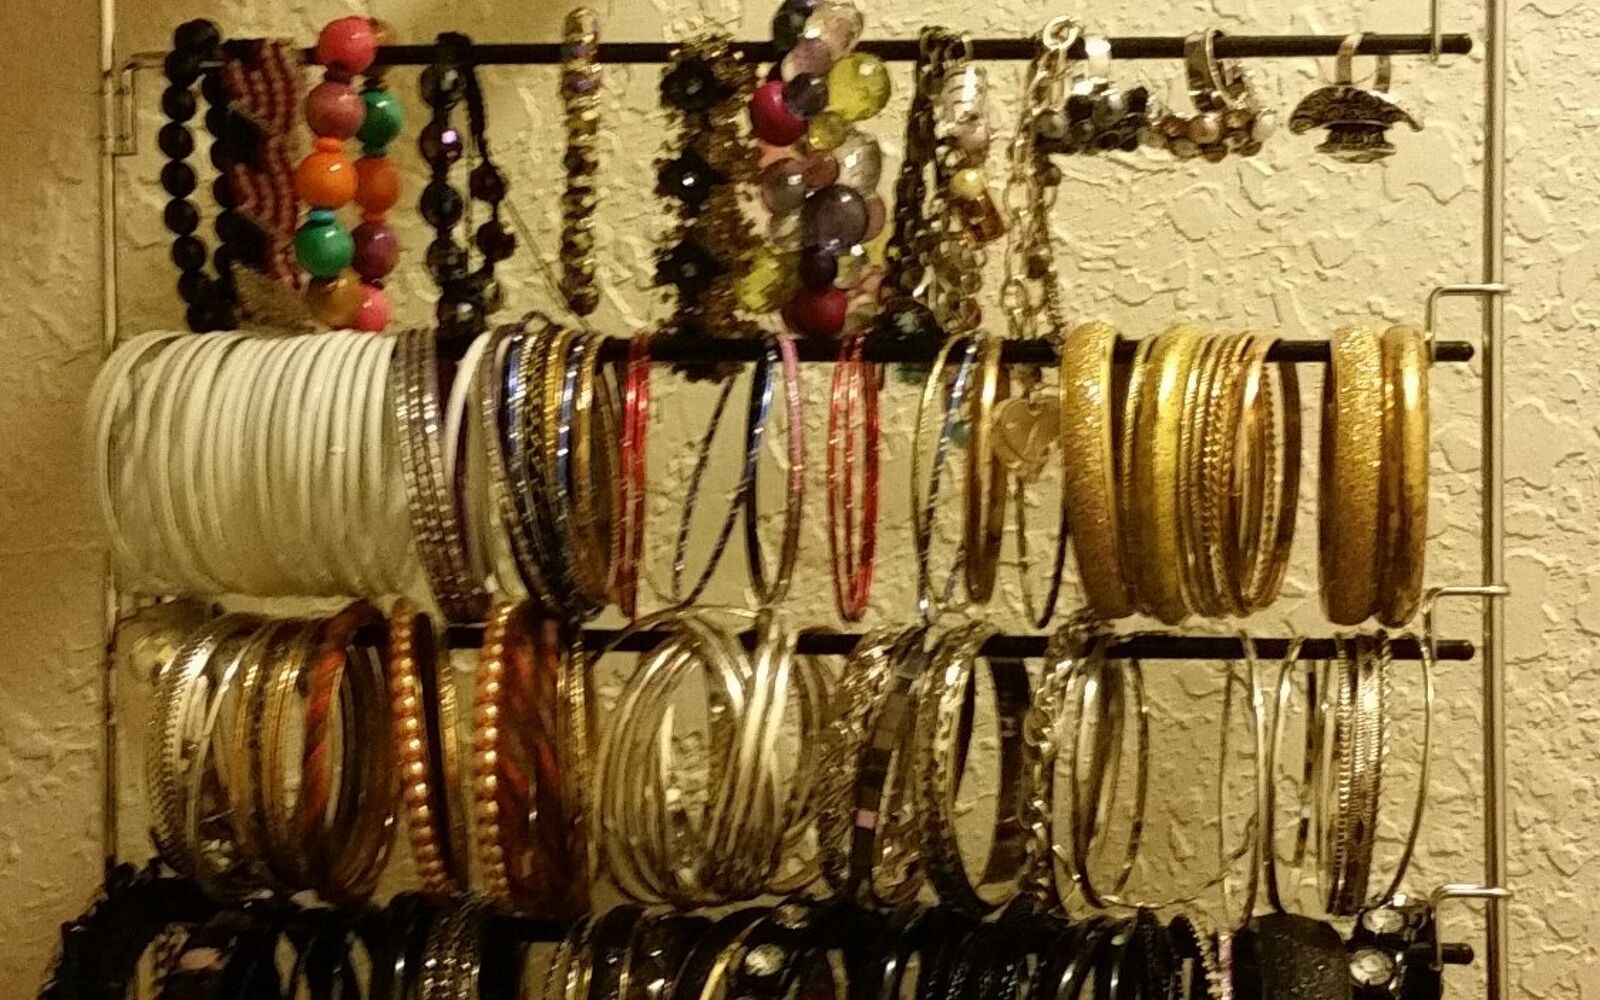 s 32 space saving storage ideas that ll keep your home organized, Organize your jewelry on a pants hanger